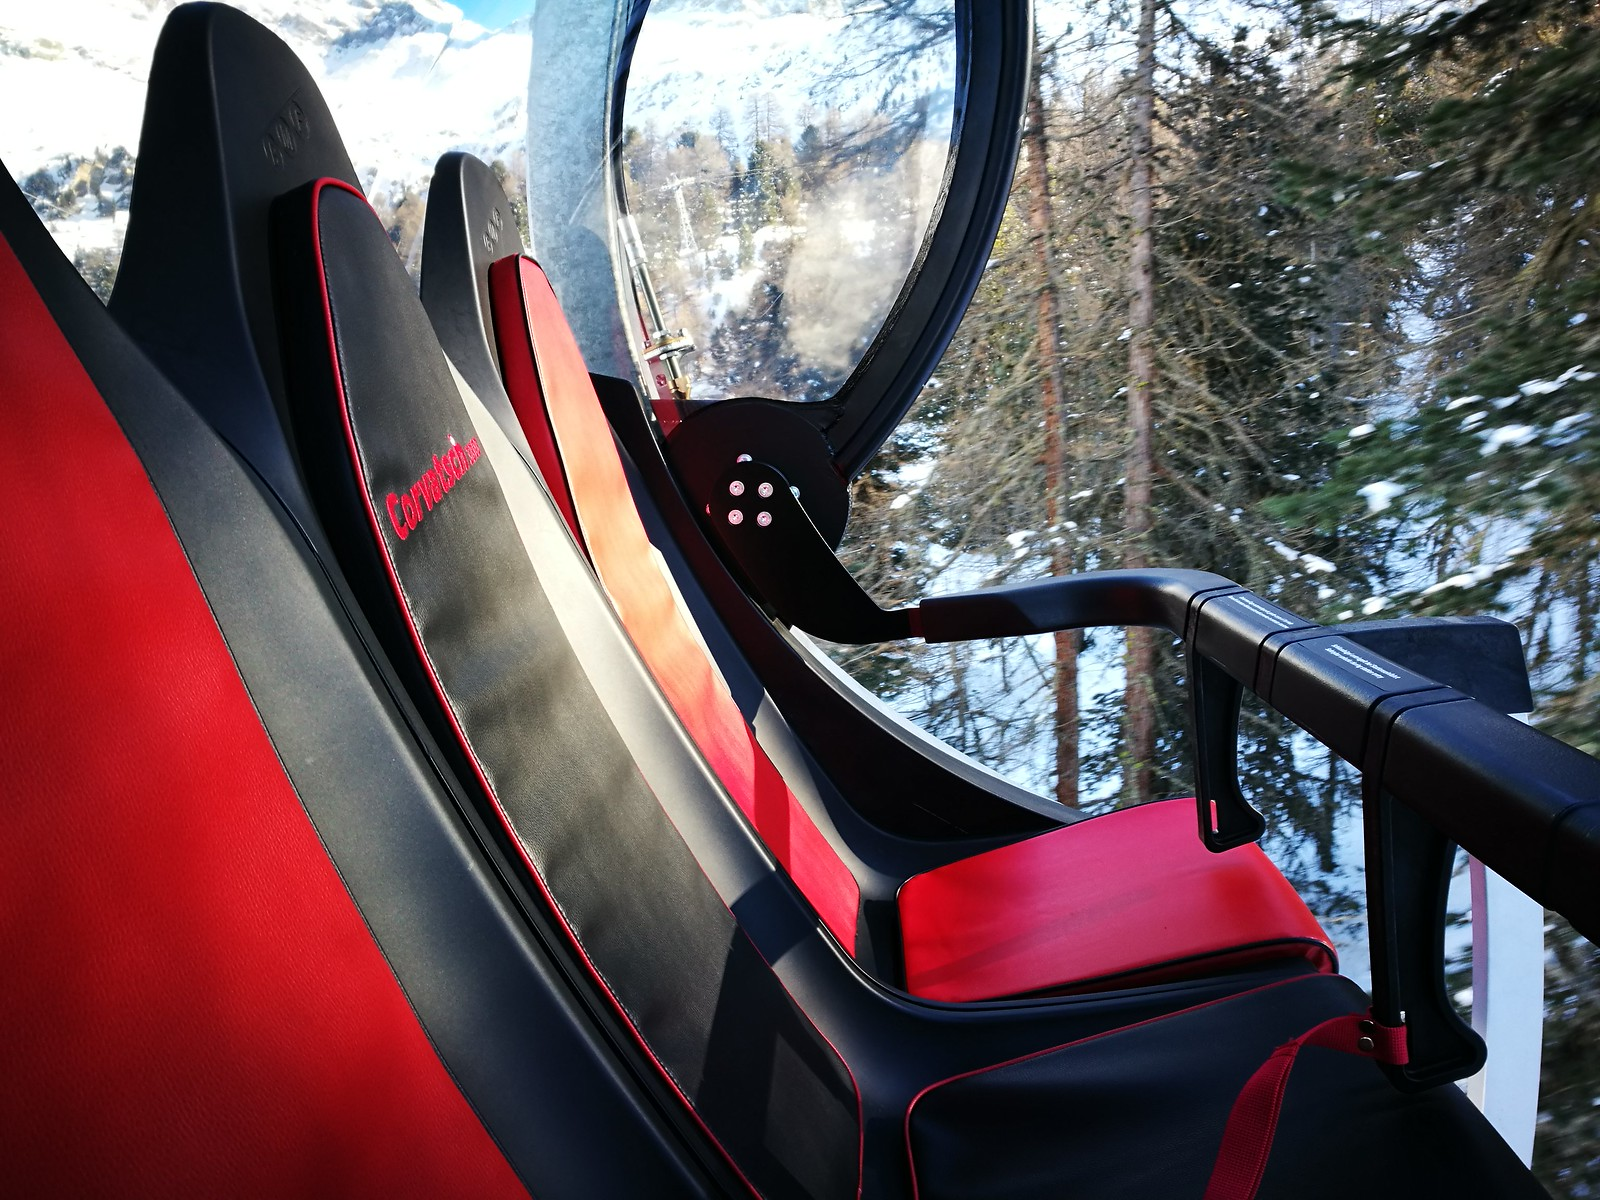 Leather backed chairlift